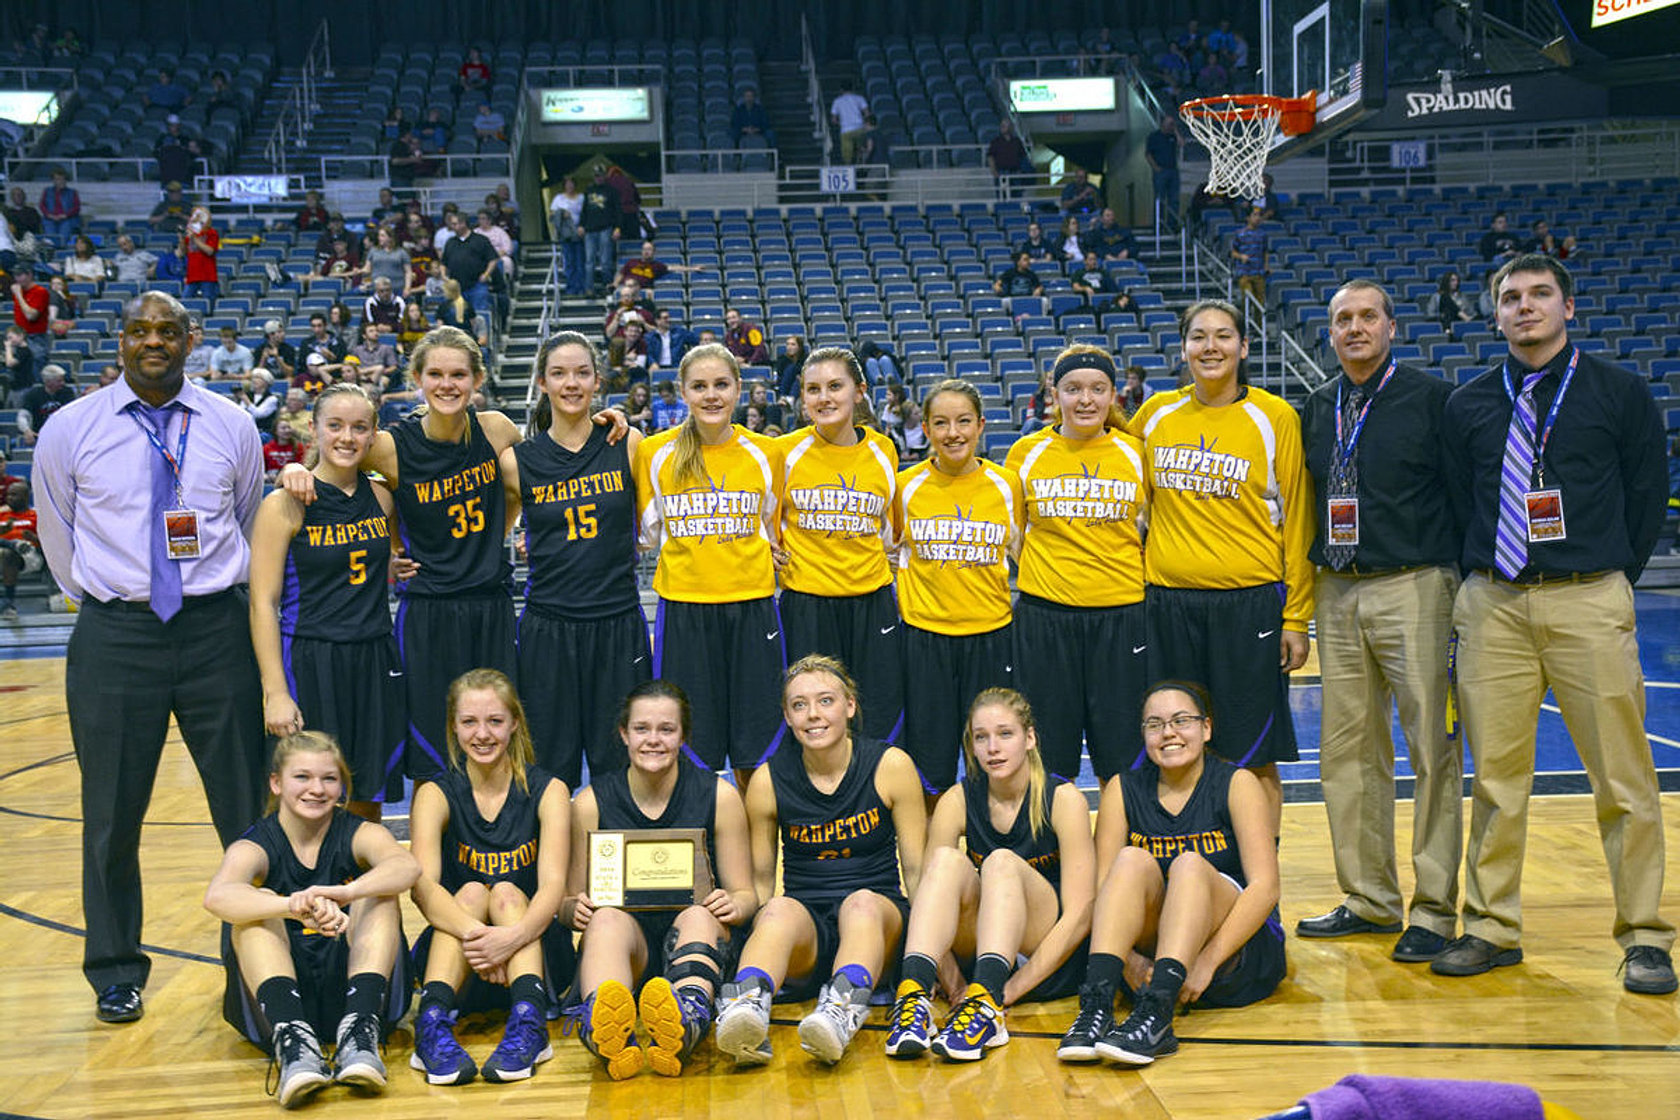 THE LADY HUSKIES PLACE 4TH AT STATE